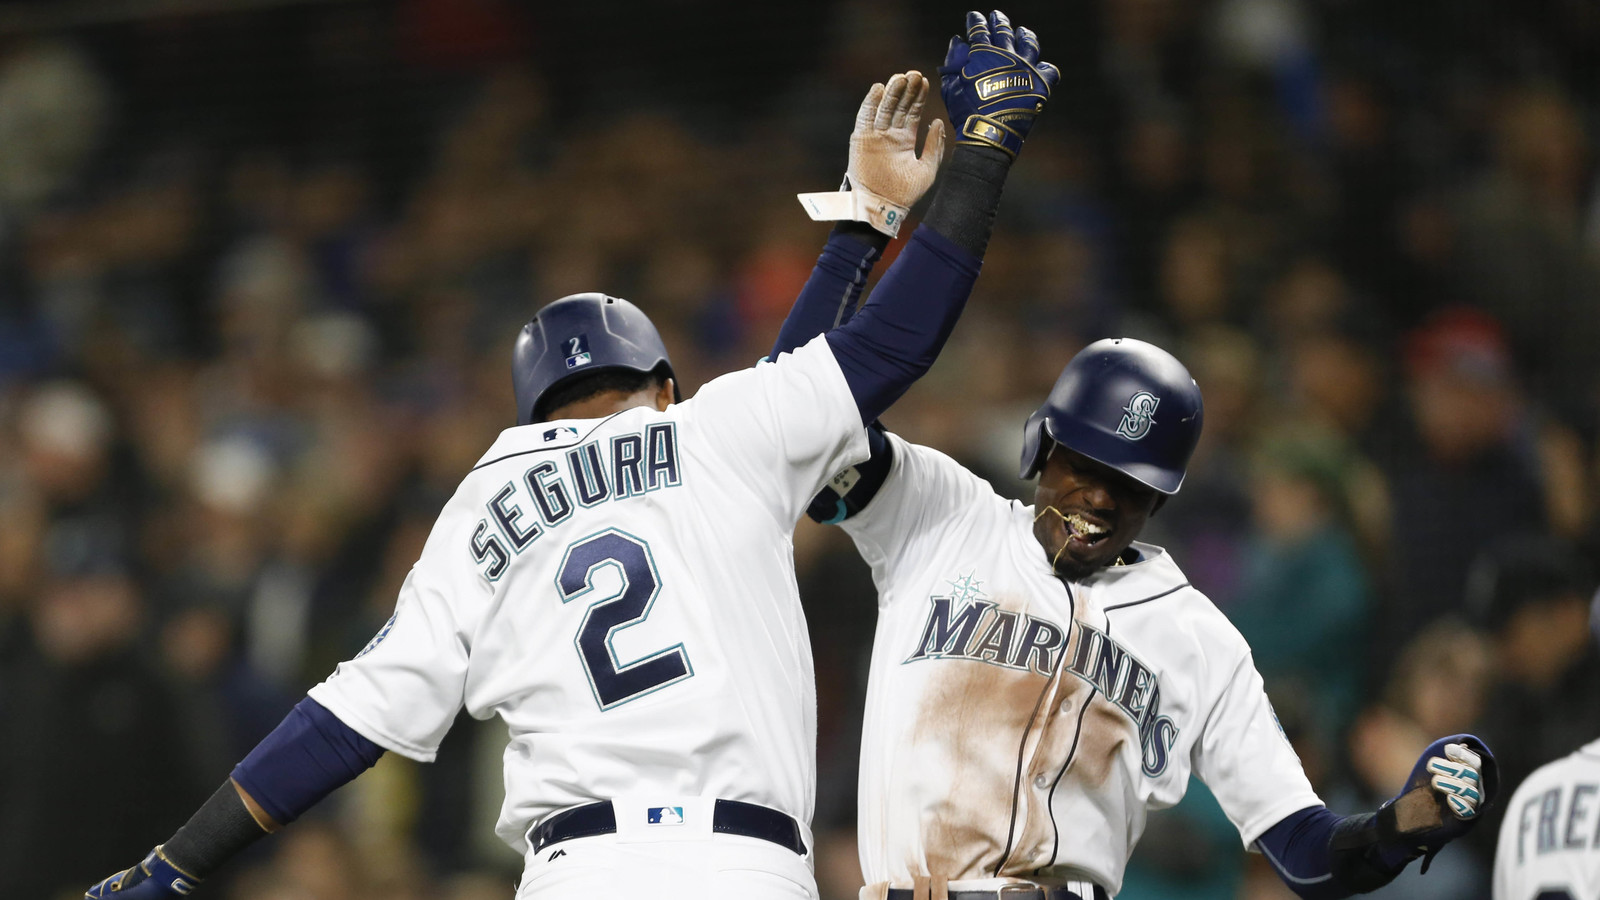 Report: Dee Gordon, Jean Segura were Mariners involved in clubhouse altercation